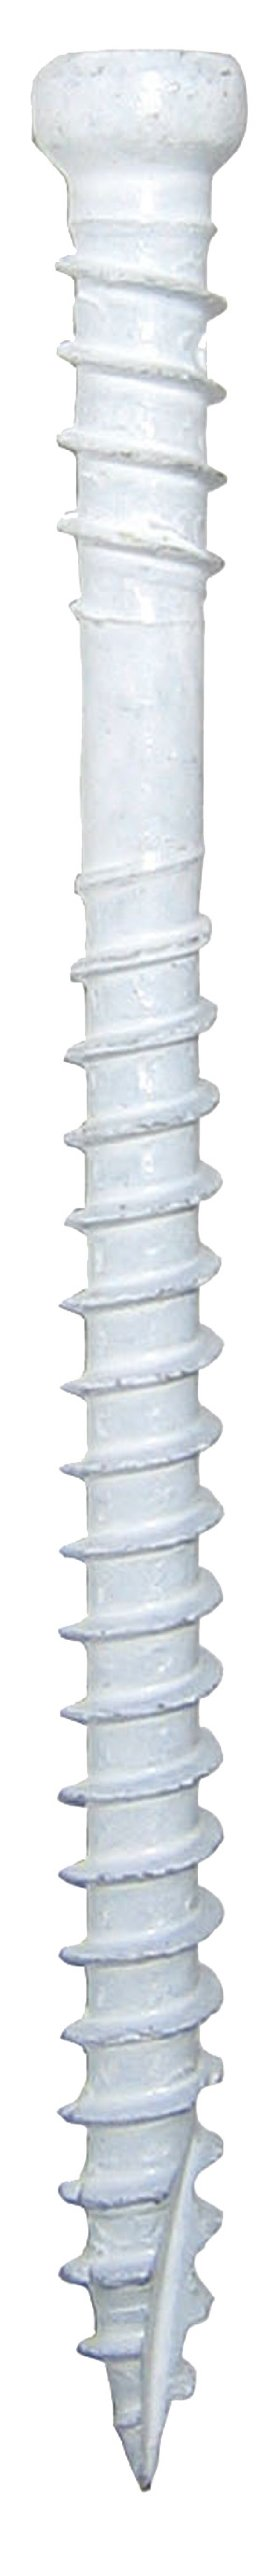 GRK 772691156327 White RT Composite Trim Head Screw Number-8 by 2-3/4-Inch Bulk Box Screw, 3000-Piece